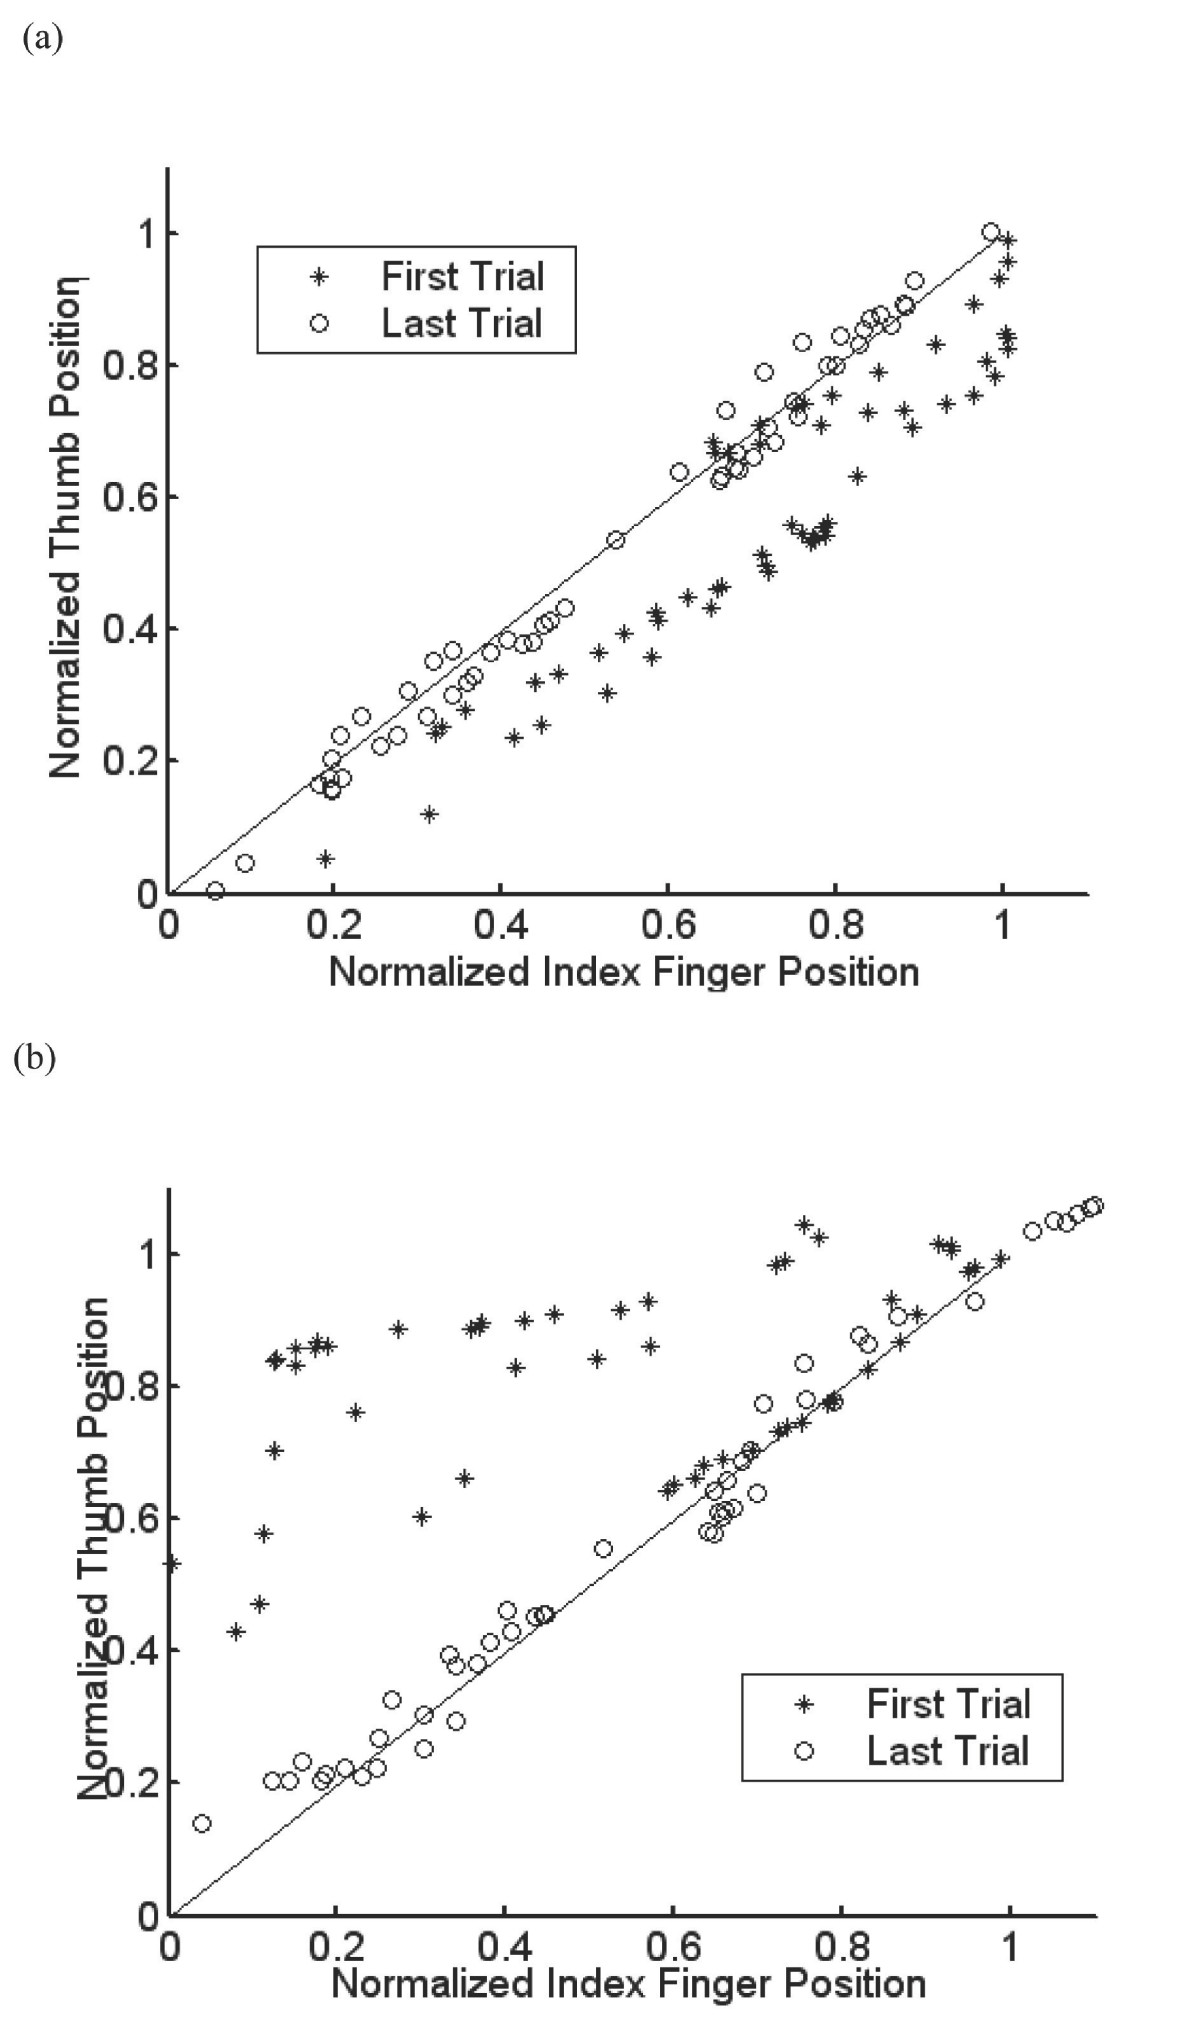 https://static-content.springer.com/image/art%3A10.1186%2F1743-0003-4-17/MediaObjects/12984_2006_Article_93_Fig4_HTML.jpg